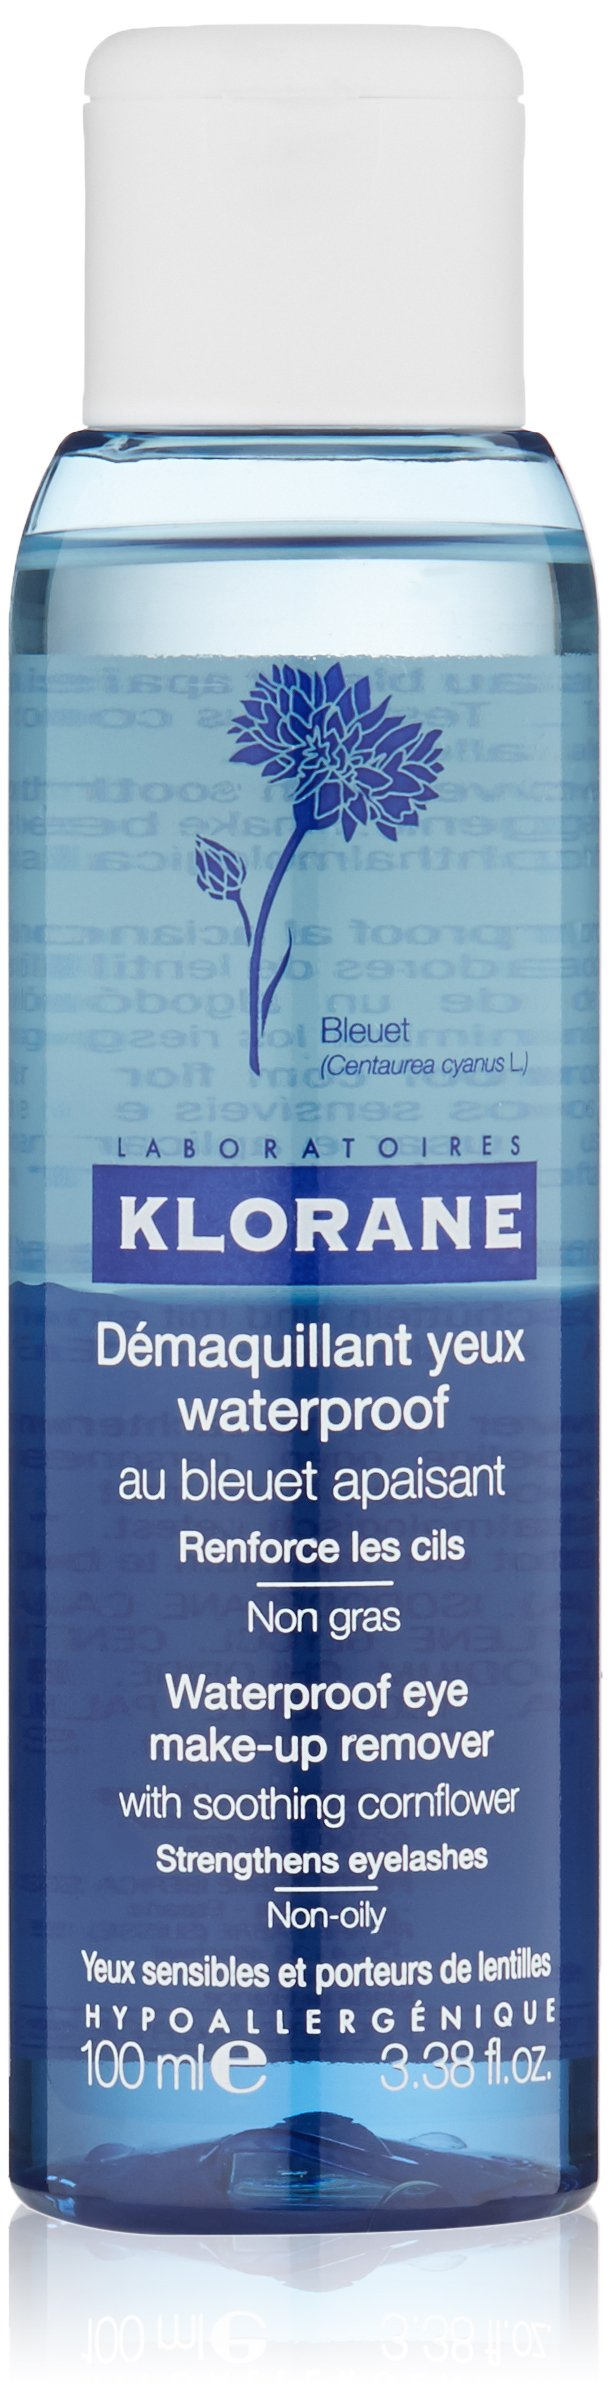 Klorane Waterproof Eye Make-Up Remover with Soothing Cornflower  , 3.38 fl. oz.